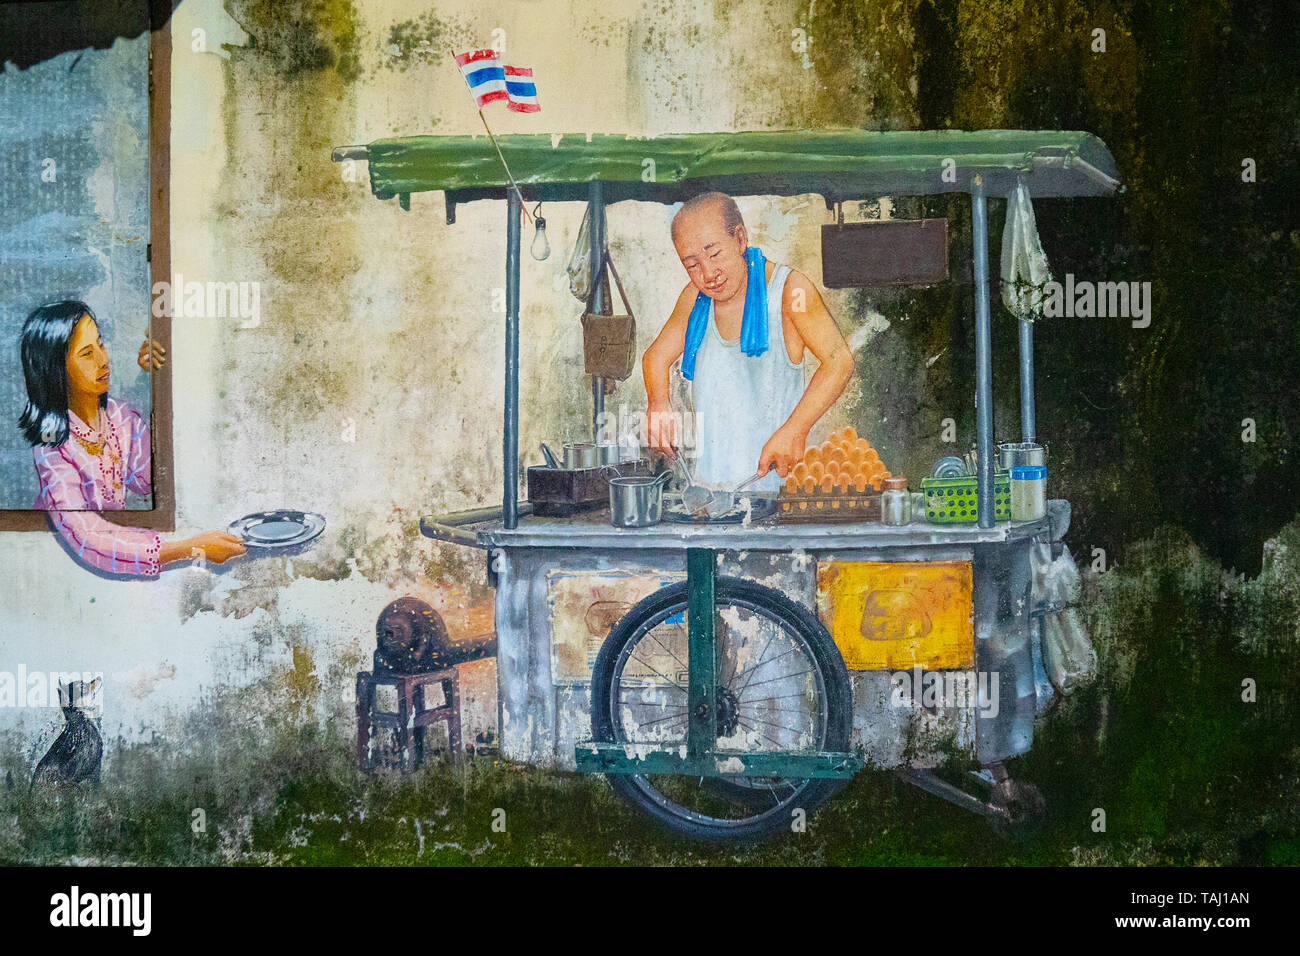 Street Art Painting Of Thai Street Food On A Wall On Phuket Island In Thailand Asia Stock Photo Alamy